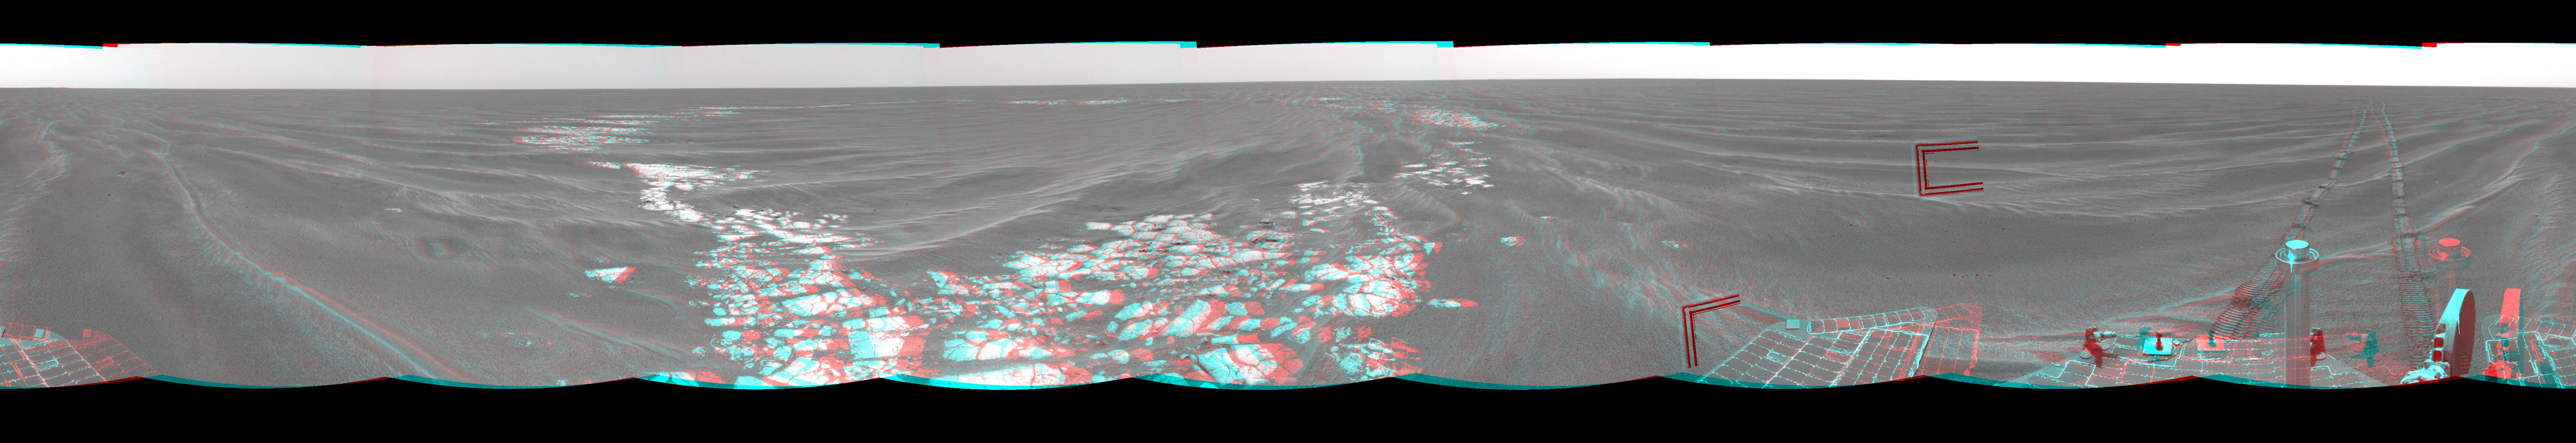 On Mar. 8, 2005, NASA's Mars Exploration Rover Opportunity drove 95 meters (312 feet) toward 'Vostok Crater' that sol before taking images. 3-D glasses are necessary to view this image.